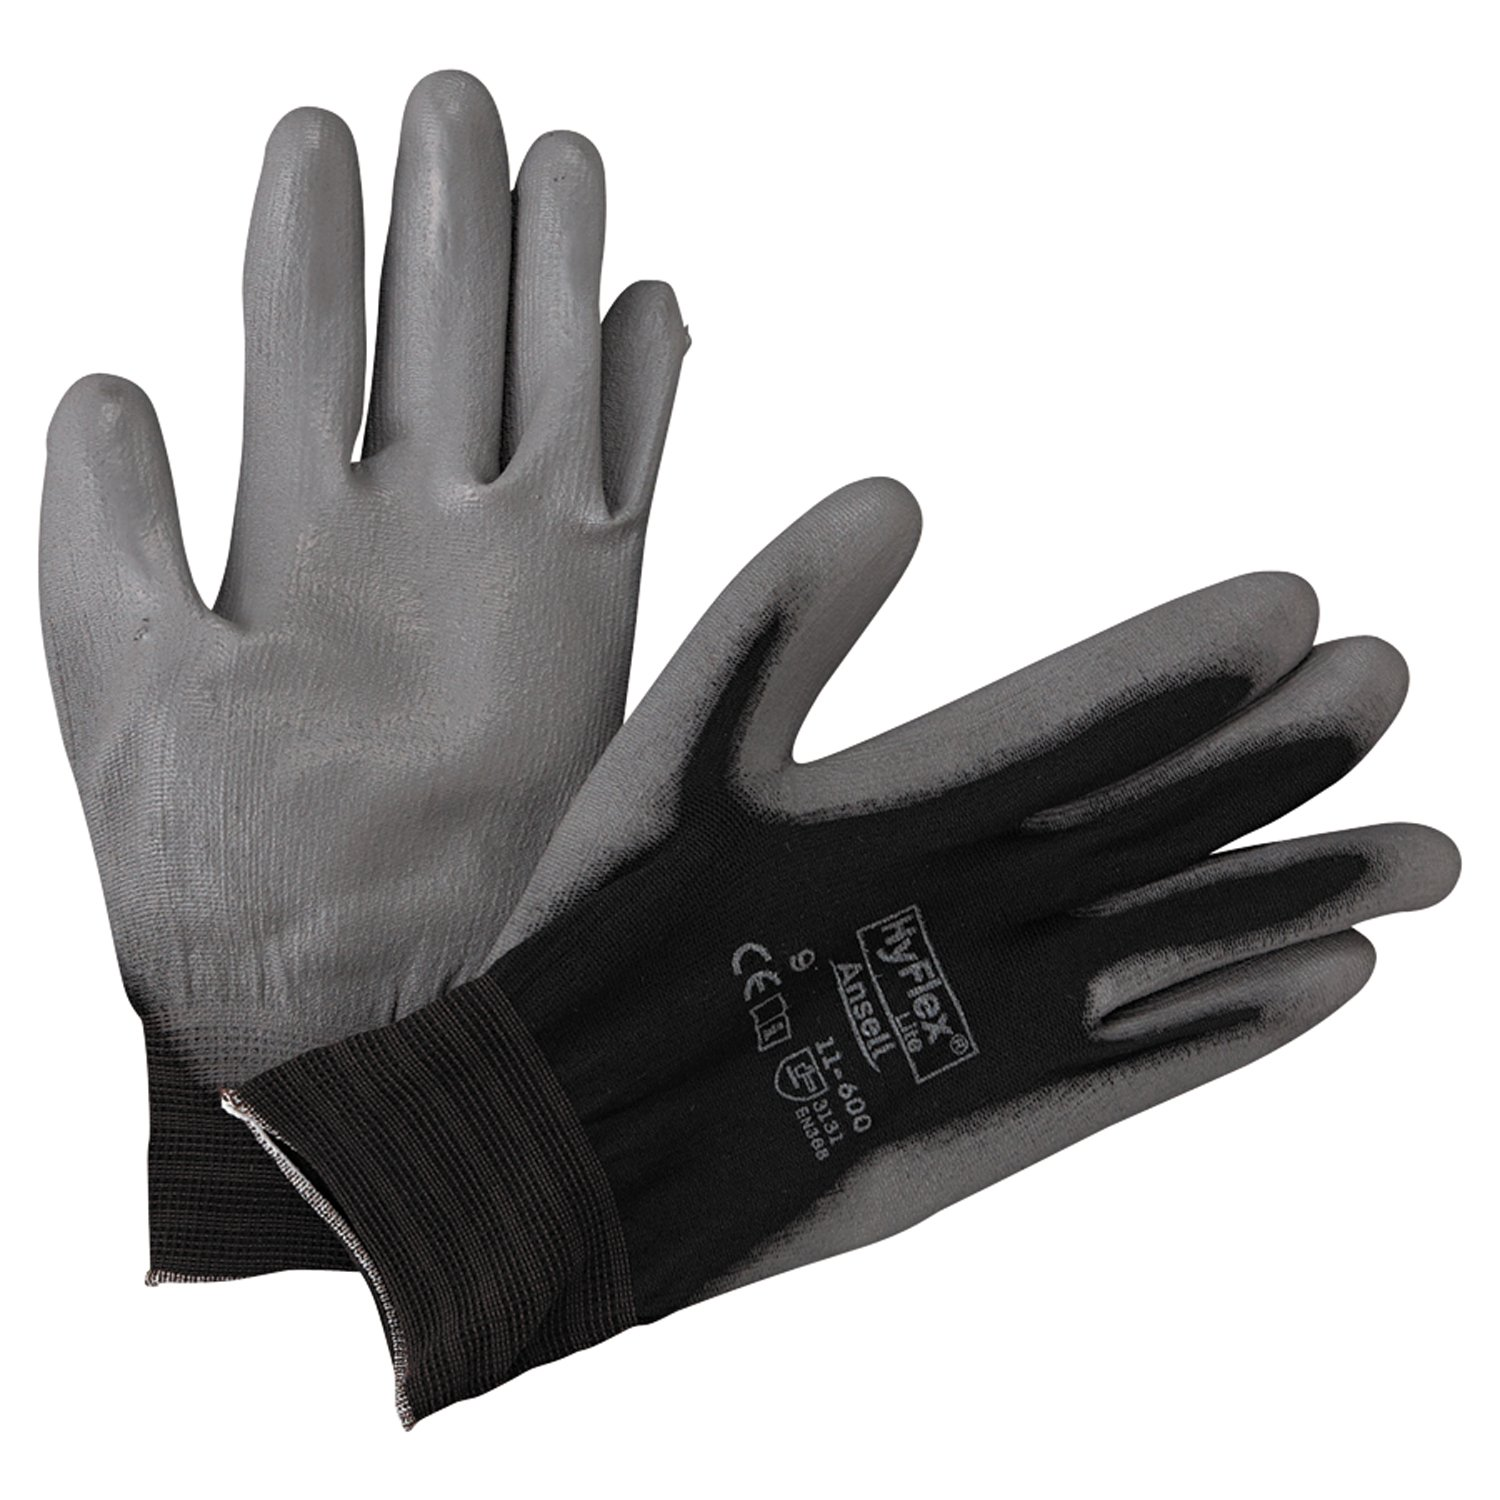 Insulated leather work gloves amazon - Top Rated